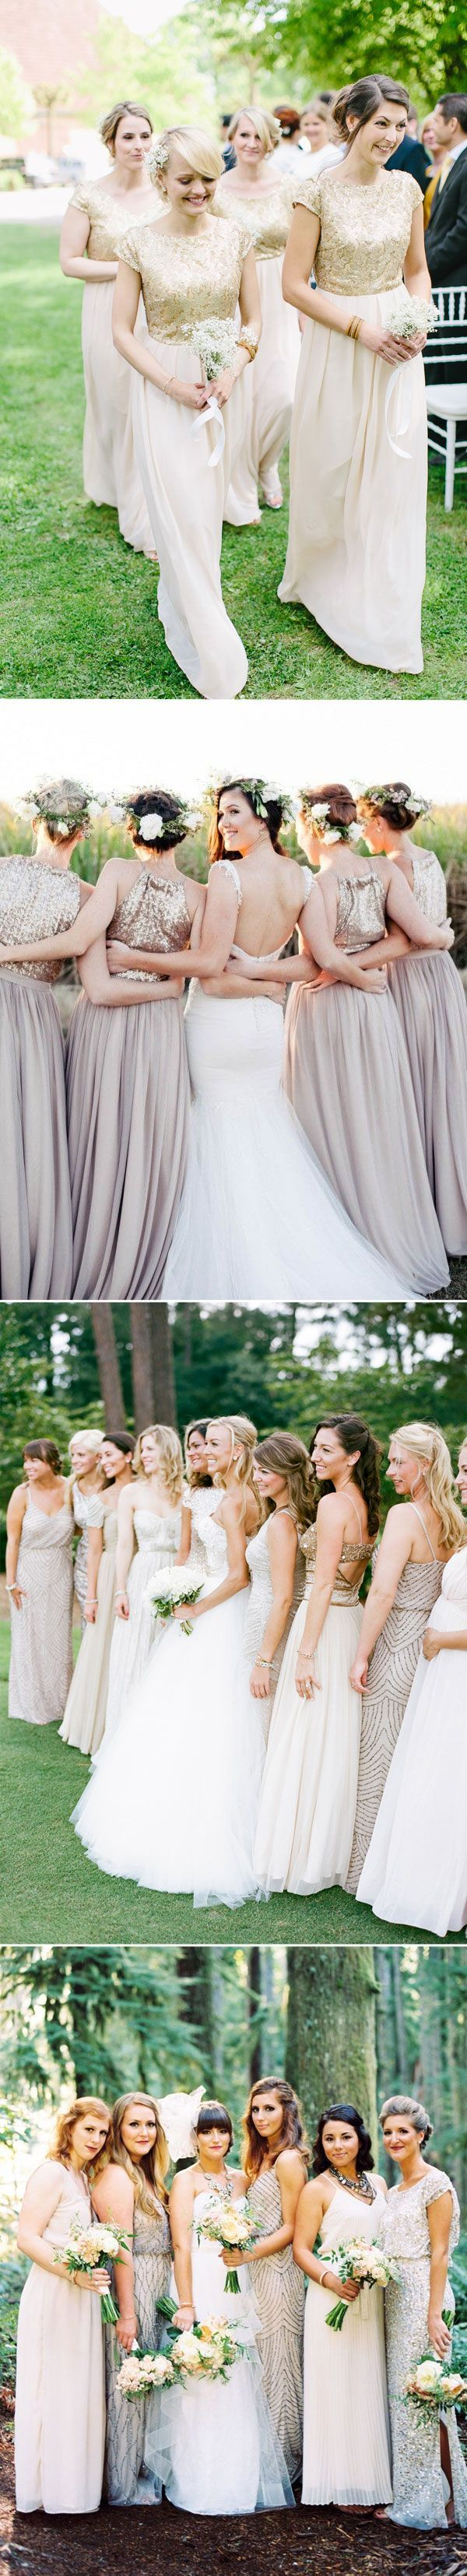 These metallic silver and gold bridesmaid dresses are amazing! real wedding long bridesmaid dresses for fall 2015